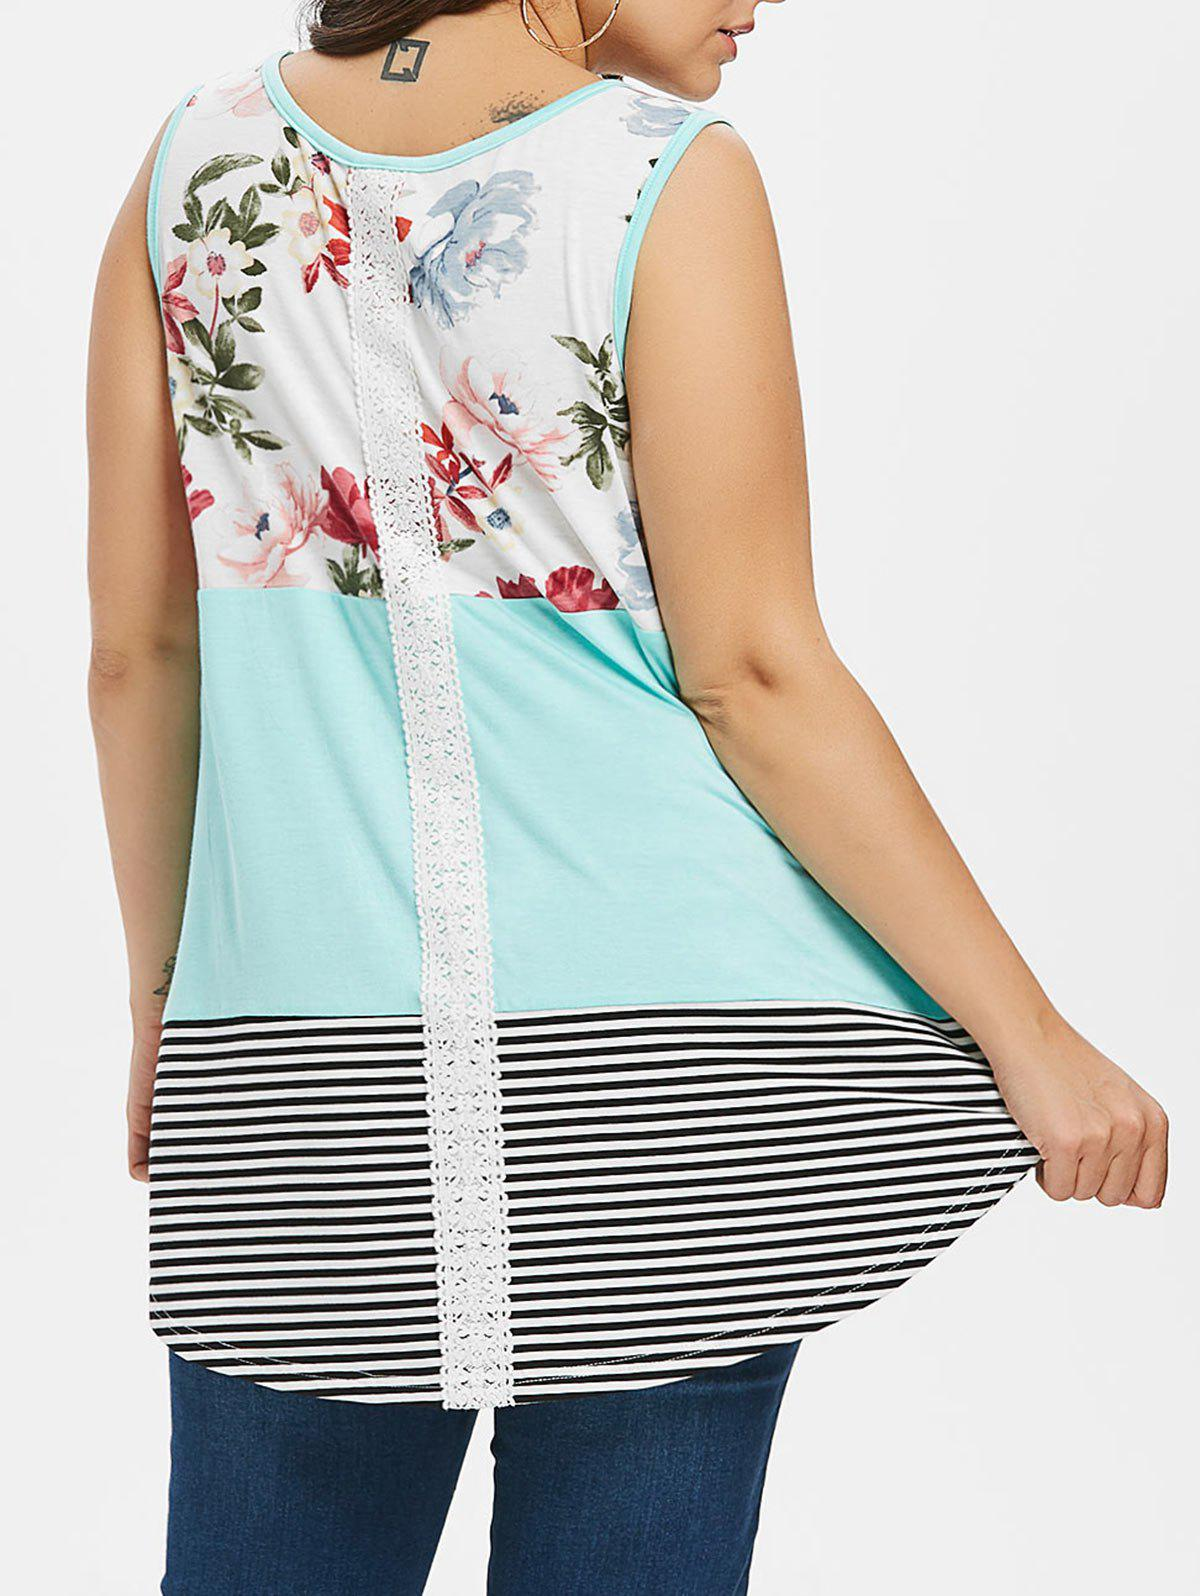 Unique Floral and Striped Print Plus Size Tank Top